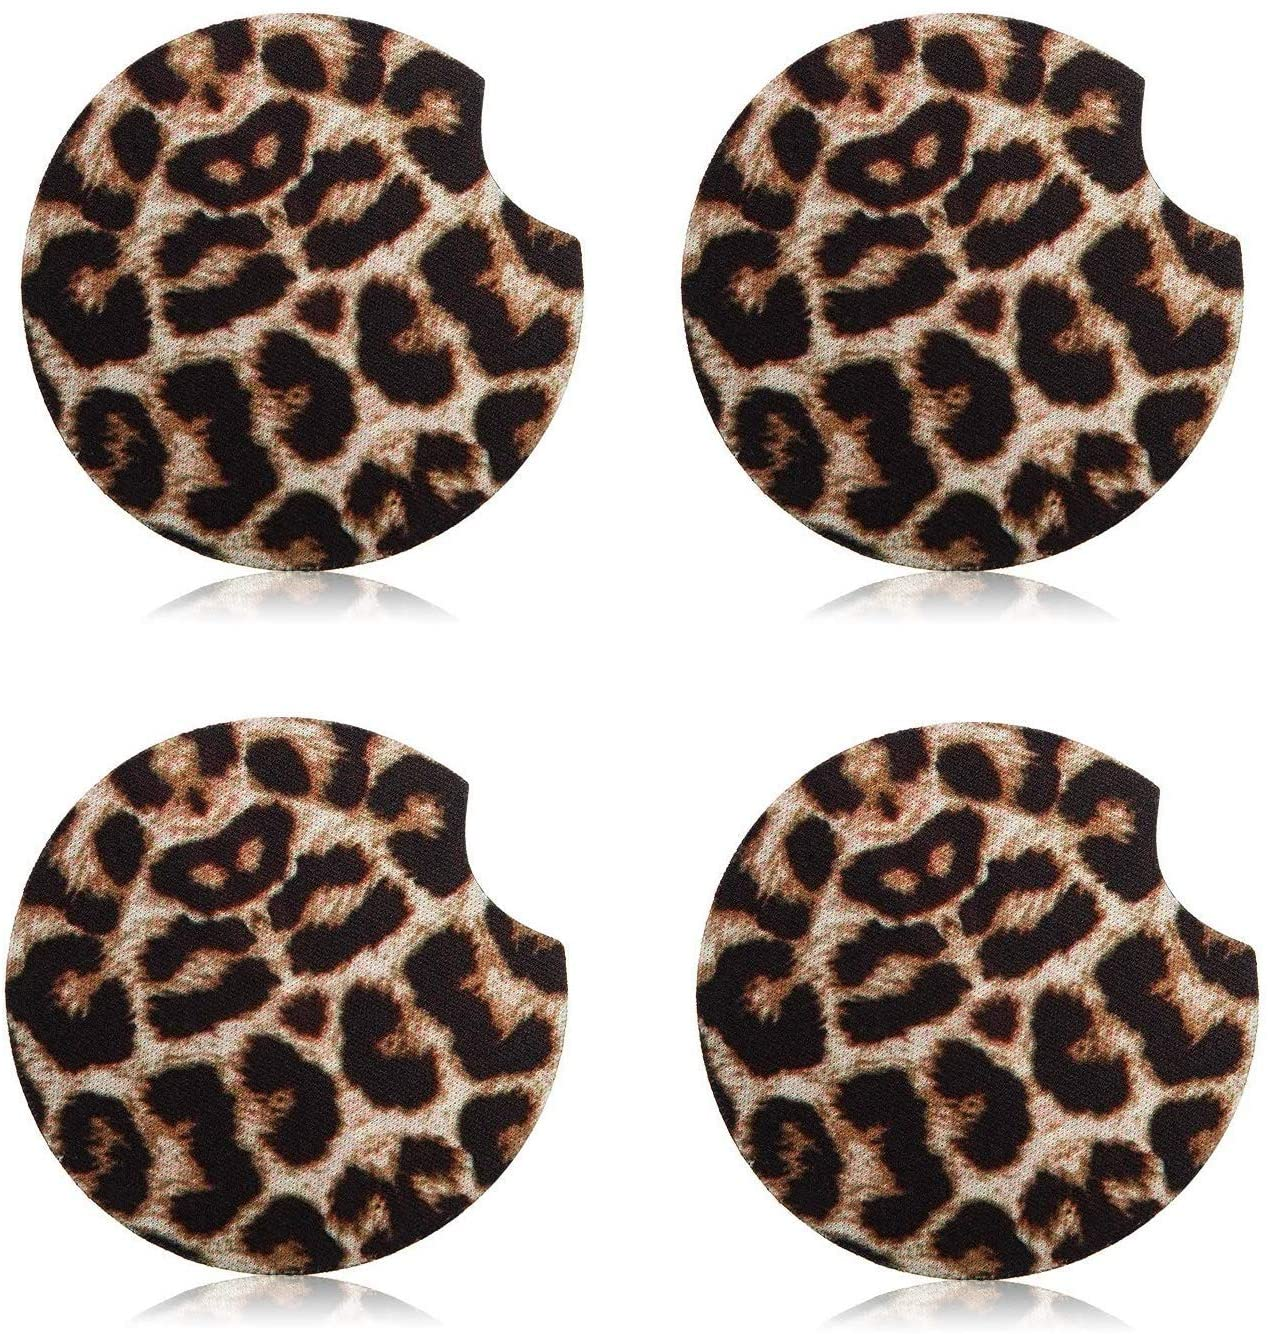 4 Pack Leopard Car Coaster Neoprene Car Cup Holder Coasters Cupholder Mug Coaster Leopard Drink Cup Mat for Car to Keep Cup Holders Clean (2.56 Inch)